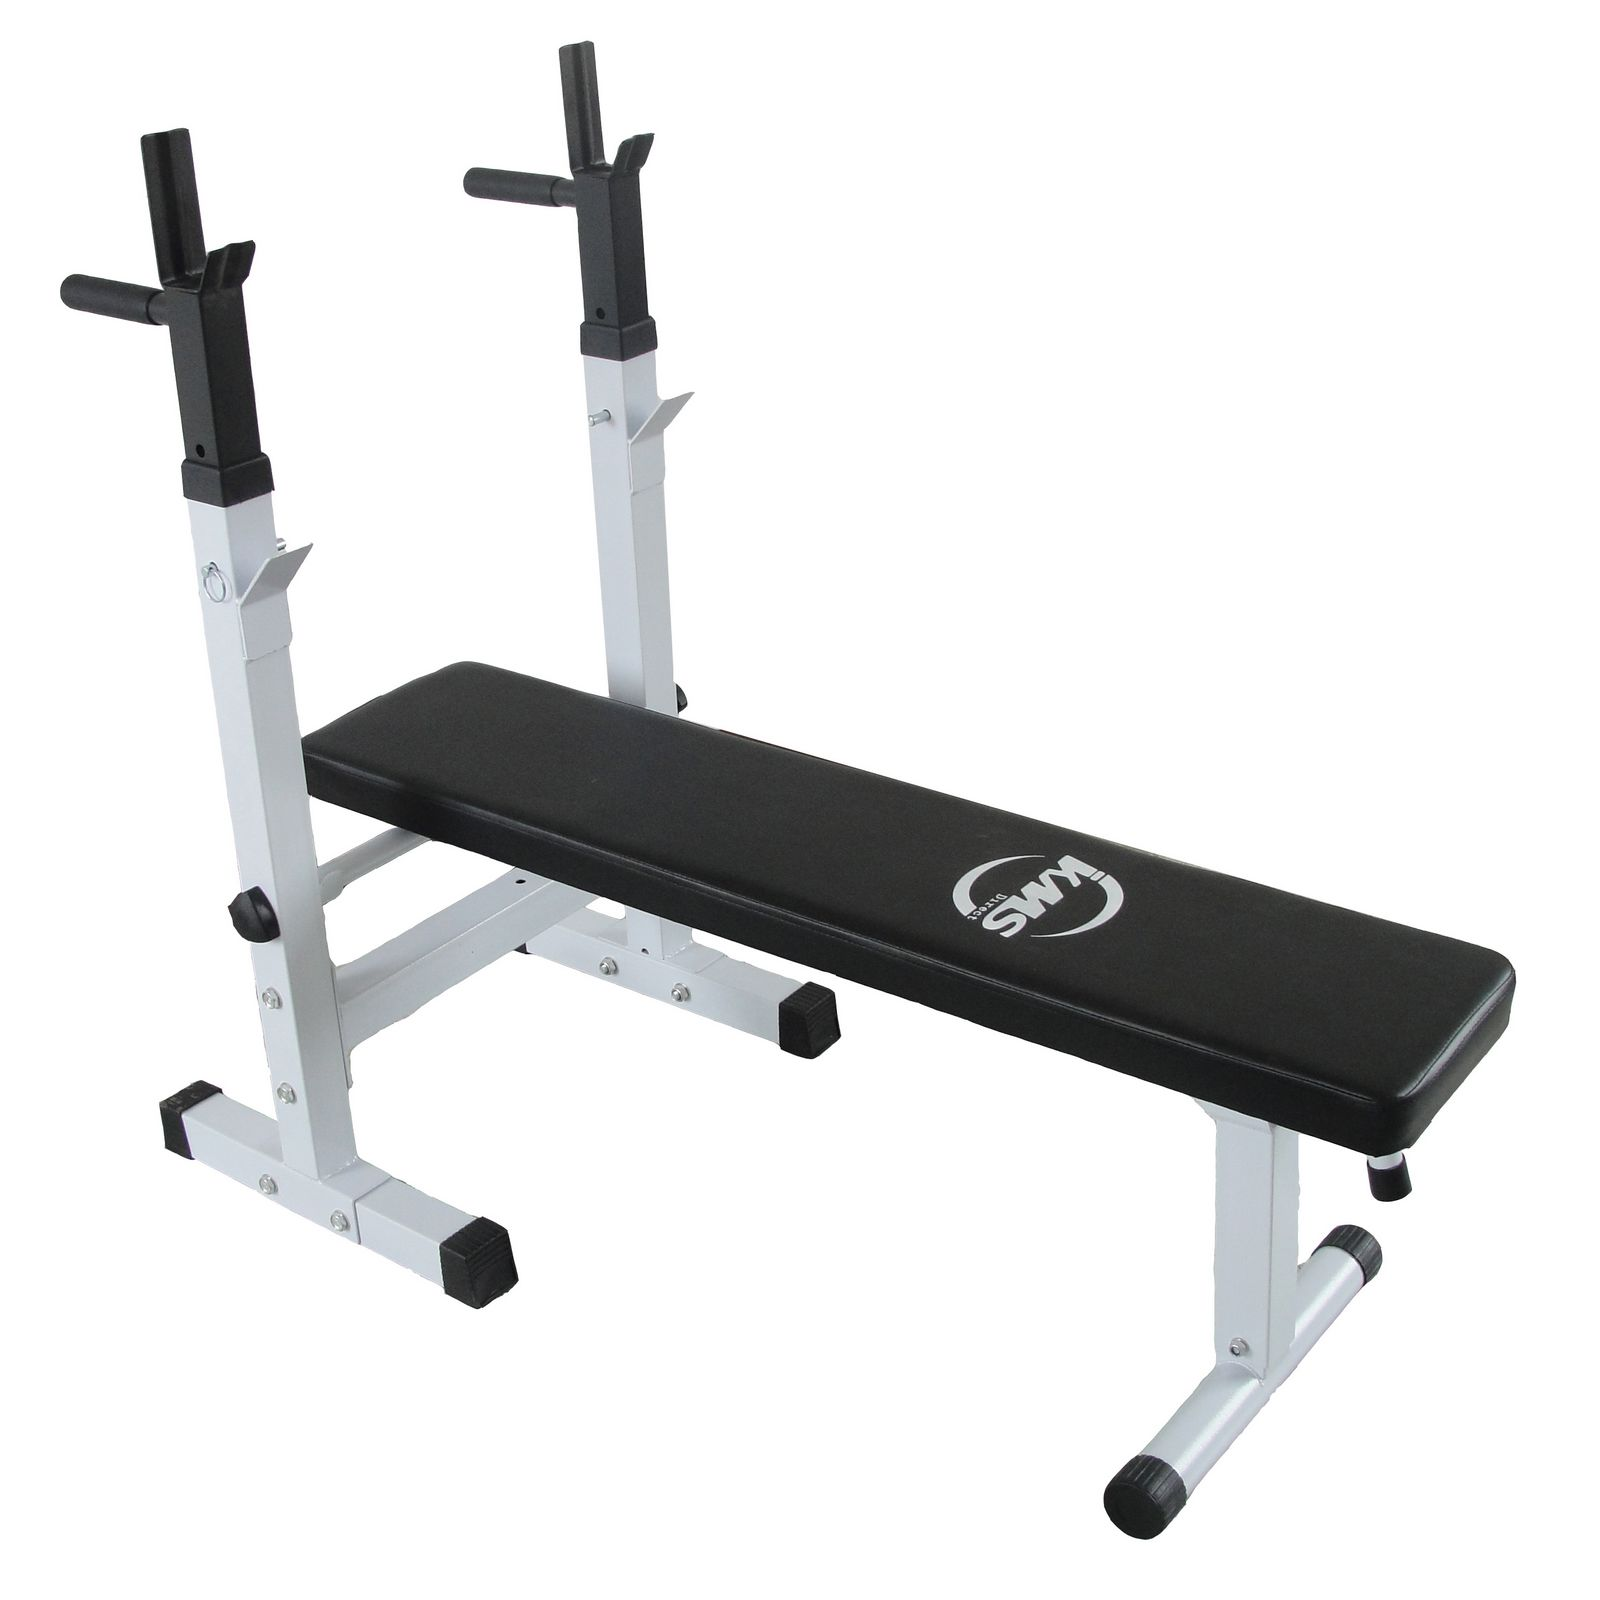 Industrial Benches For Sitting Fitness Gym Shoulder Chest Press Sit Up Weight Bench